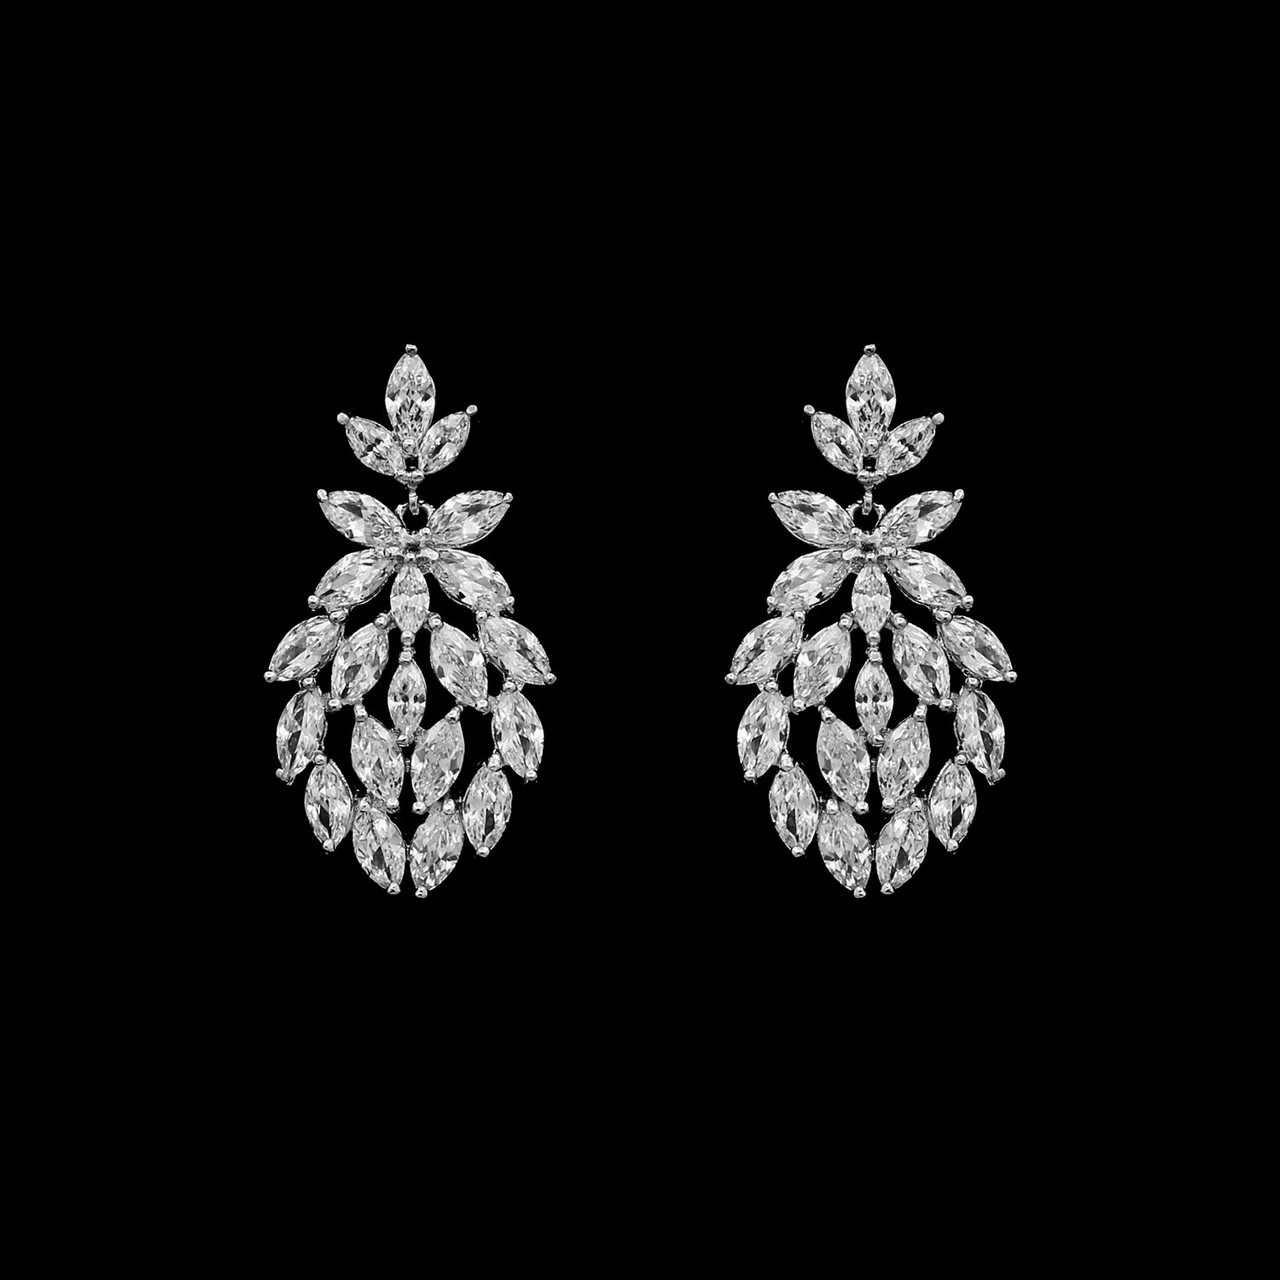 Formal Cubic Zirconia Earrings for Bridesmaids and Brides - #6210